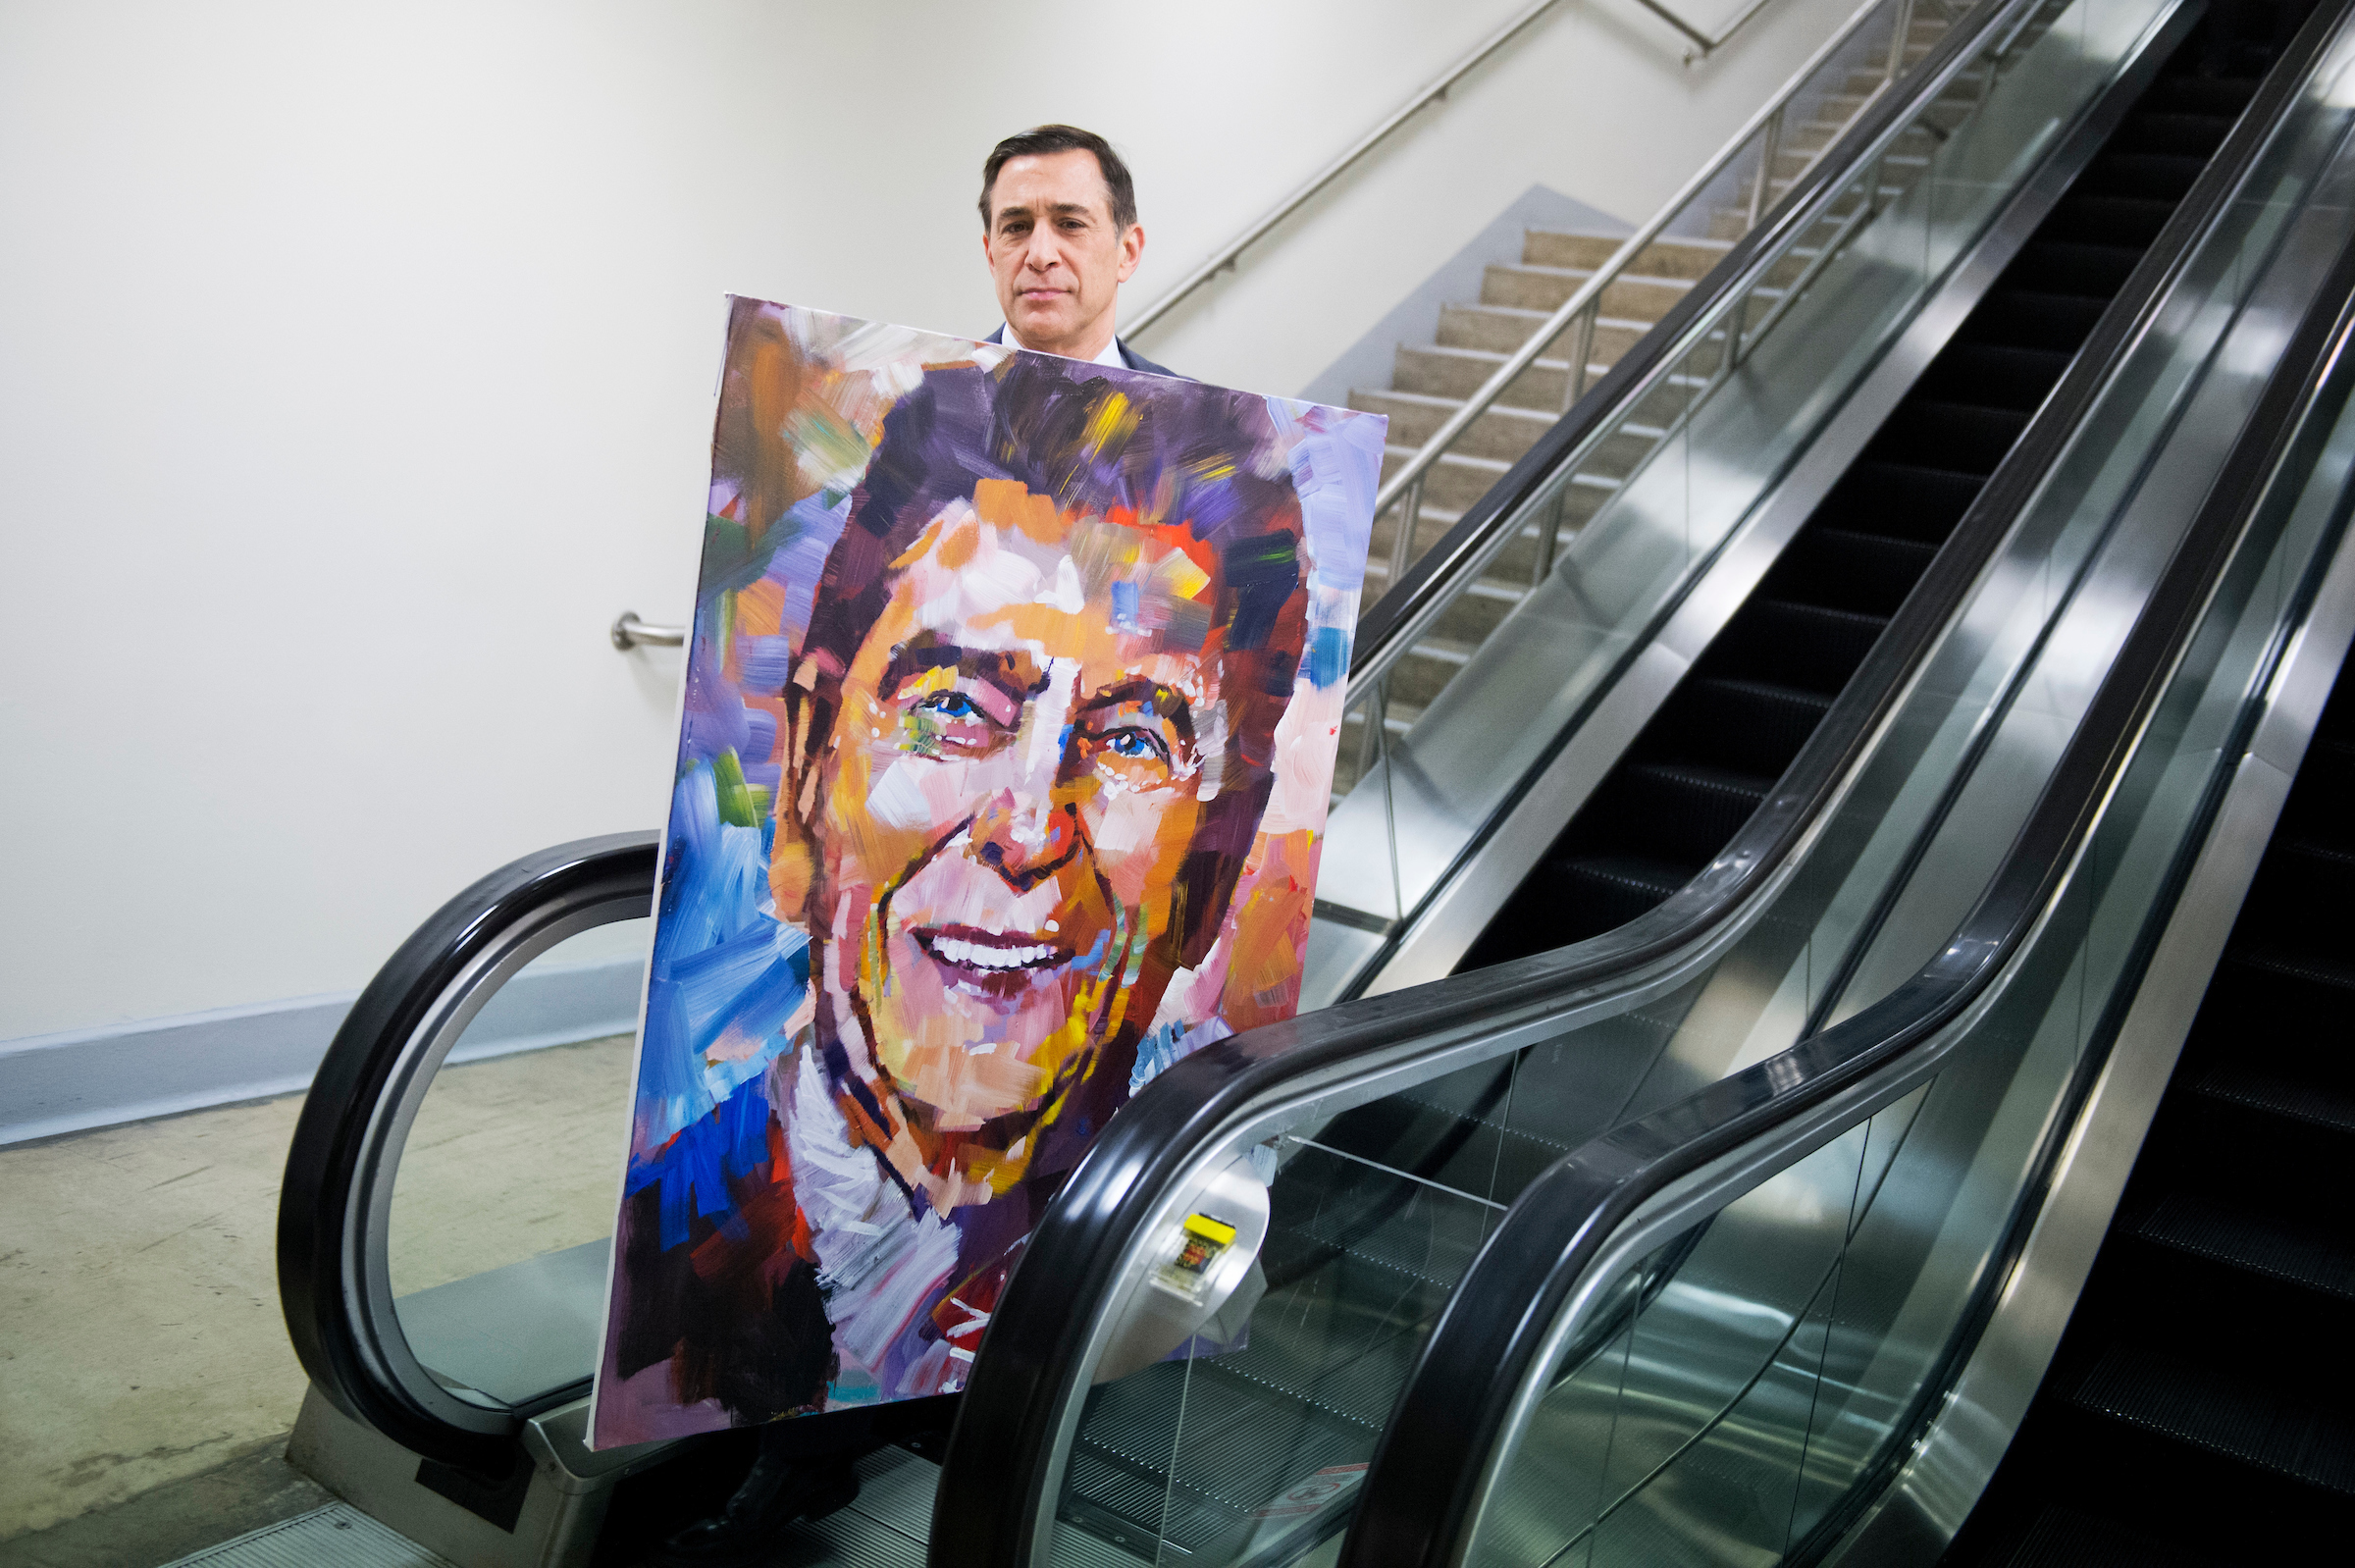 Rep. Darrell Issa walks through the basement of the Capitol with a painting of fellow Californian former President Ronald Reagan. (Tom Williams/CQ Roll Call File Photo)